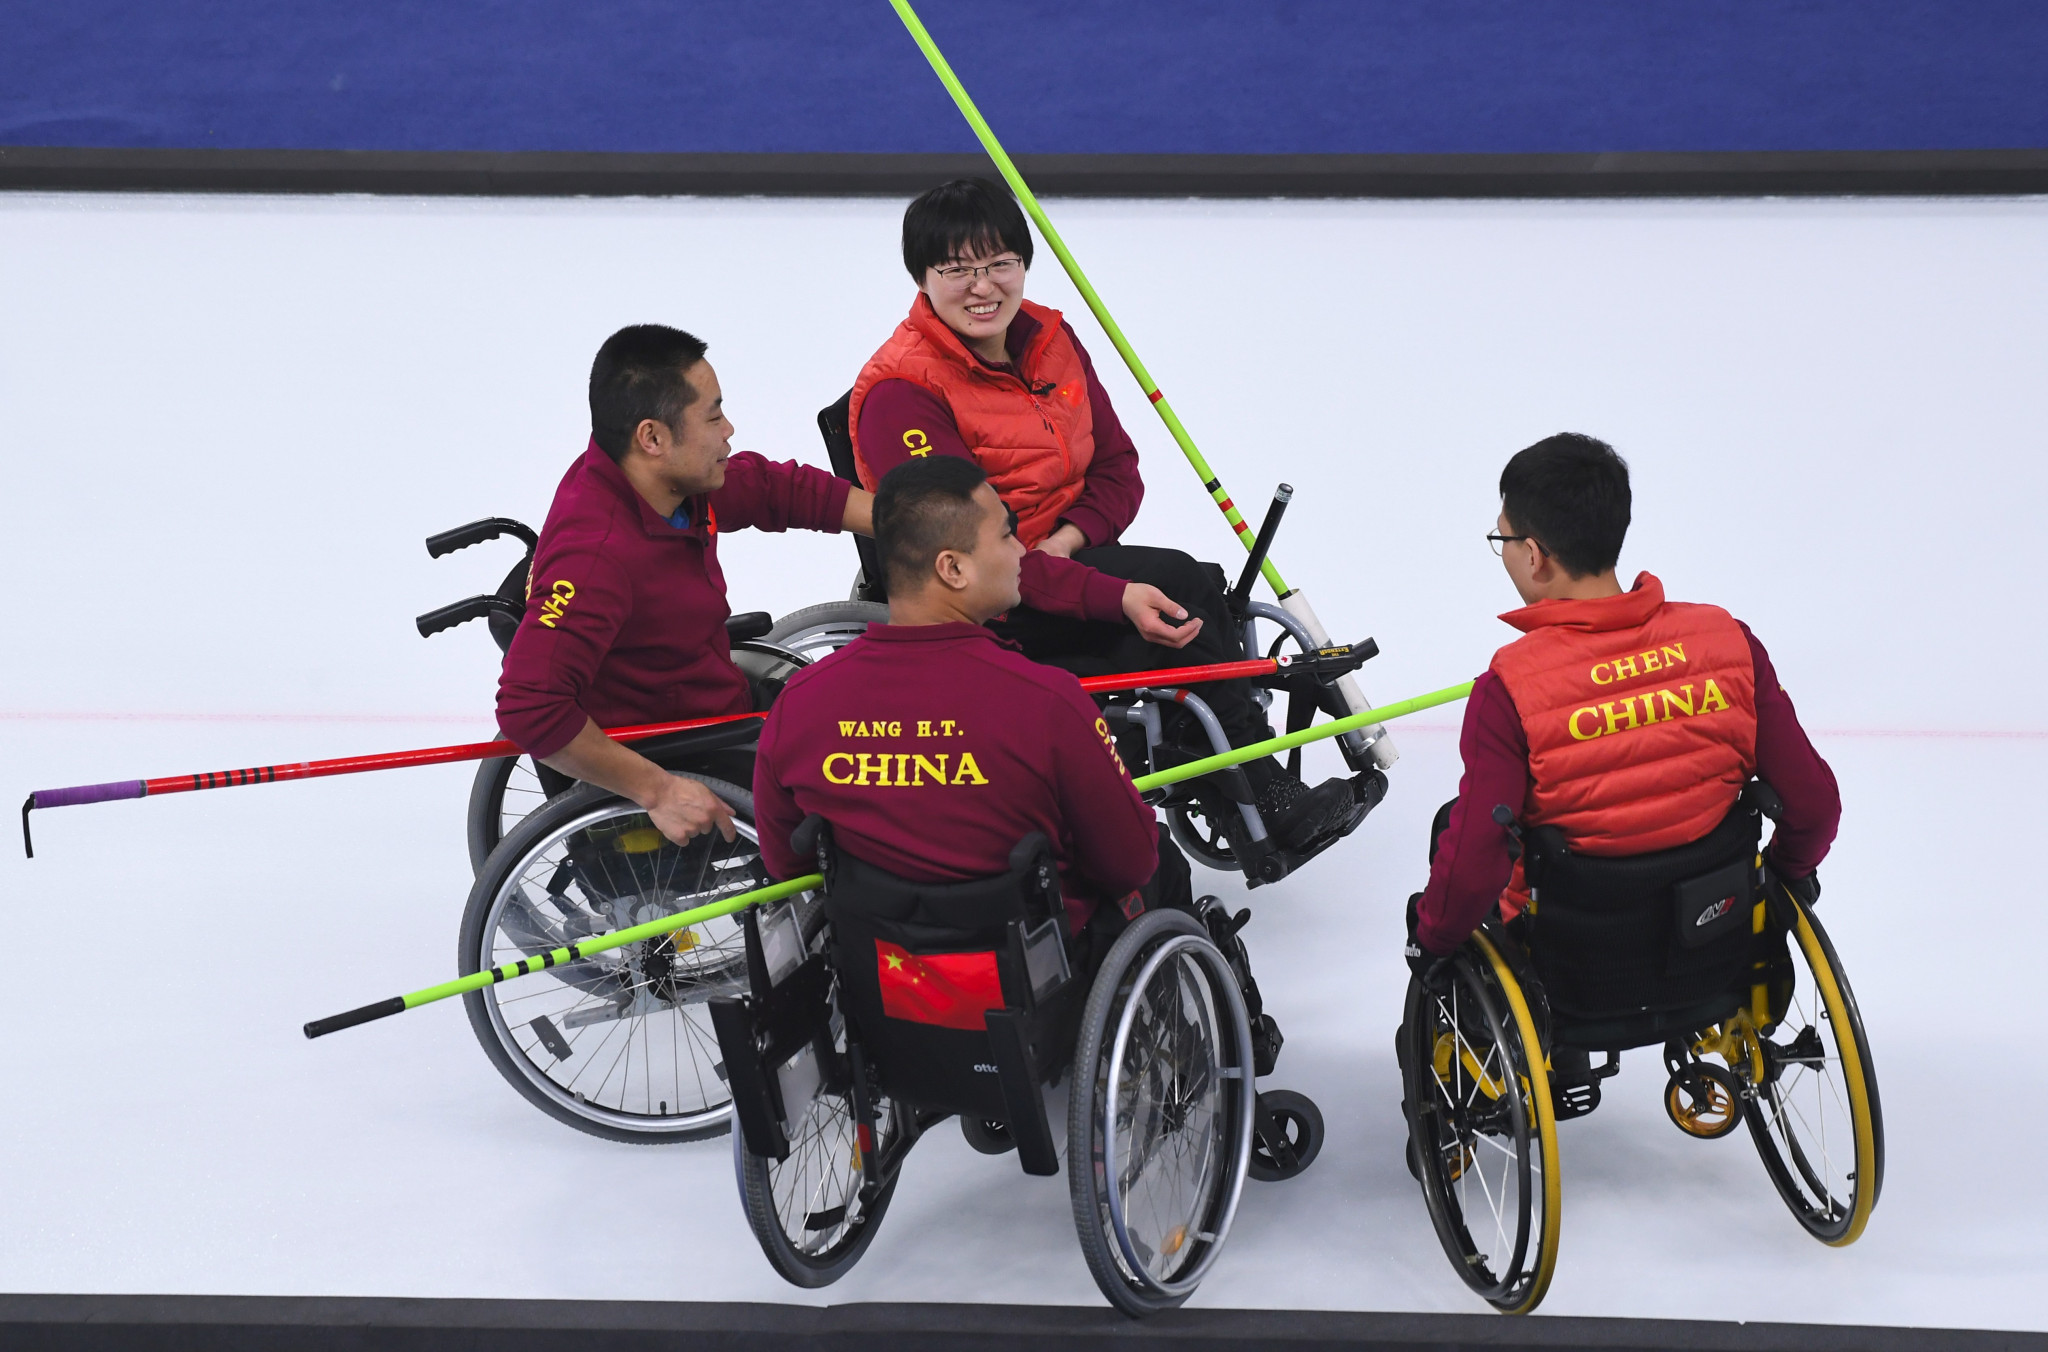 China will hope to add to their sole Winter Paralympic gold, won in wheelchair curling at Pyeongchang 2018 ©Getty Images